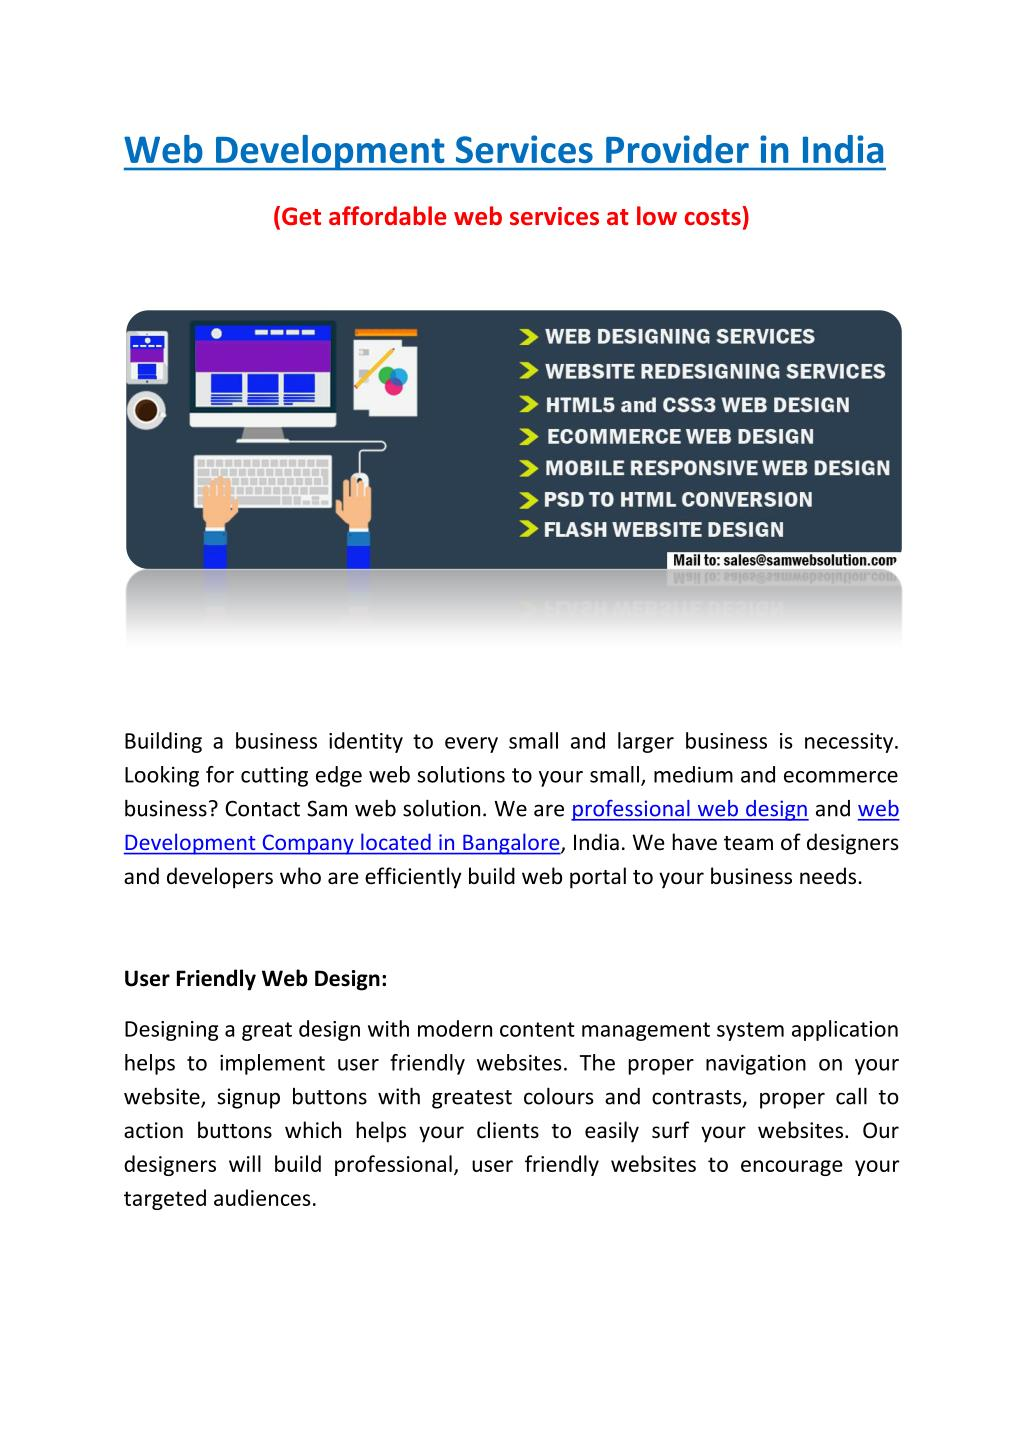 PPT - Web Development Services Provider in India PowerPoint